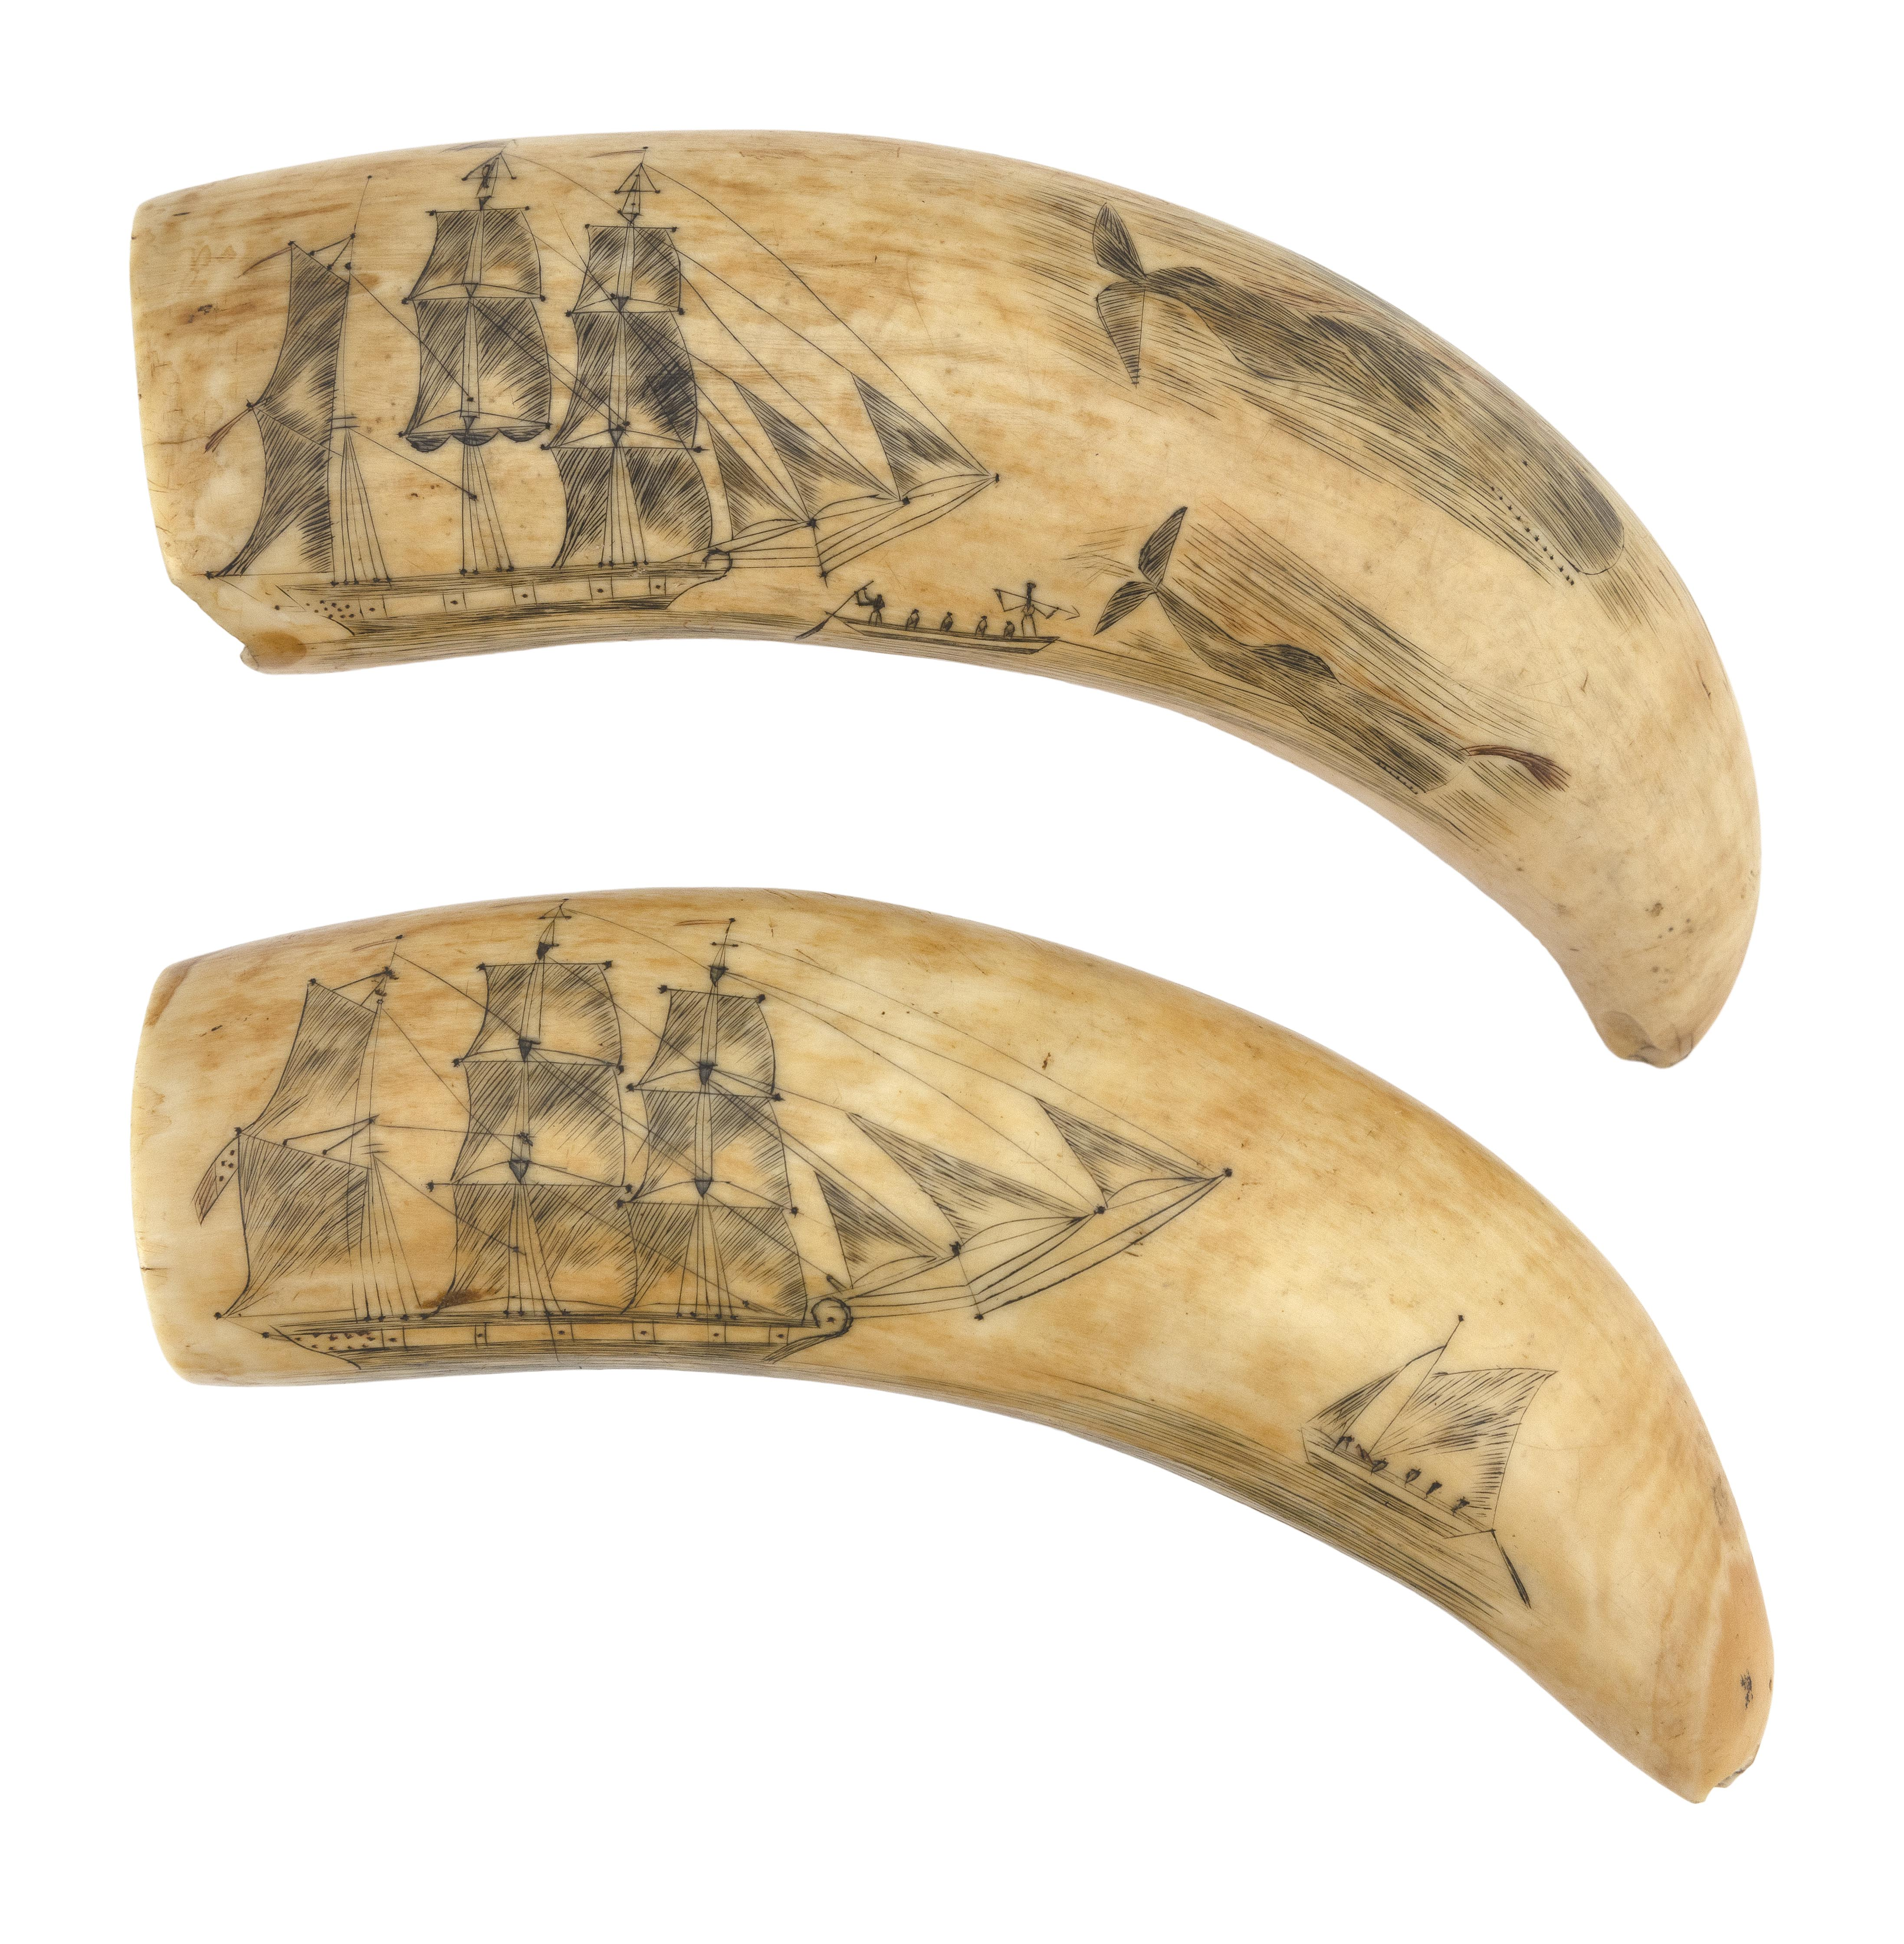 PAIR OF POLYCHROME SCRIMSHAW WHALE'S TEETH WITH WHALING SCENES Circa 1840 Lengths approx. 6.25